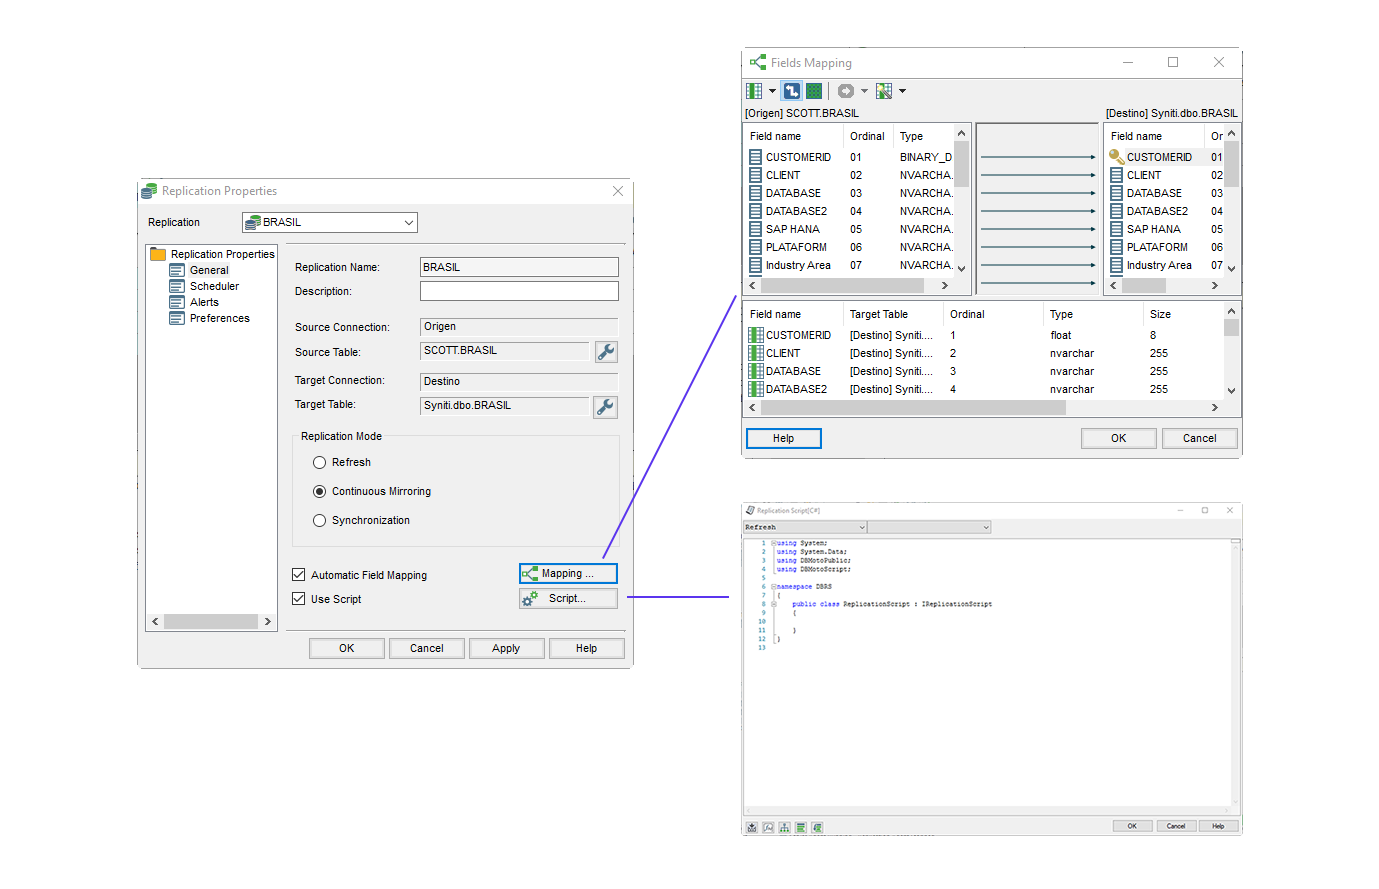 Syniti Data Replication opciones de mapping y scripting